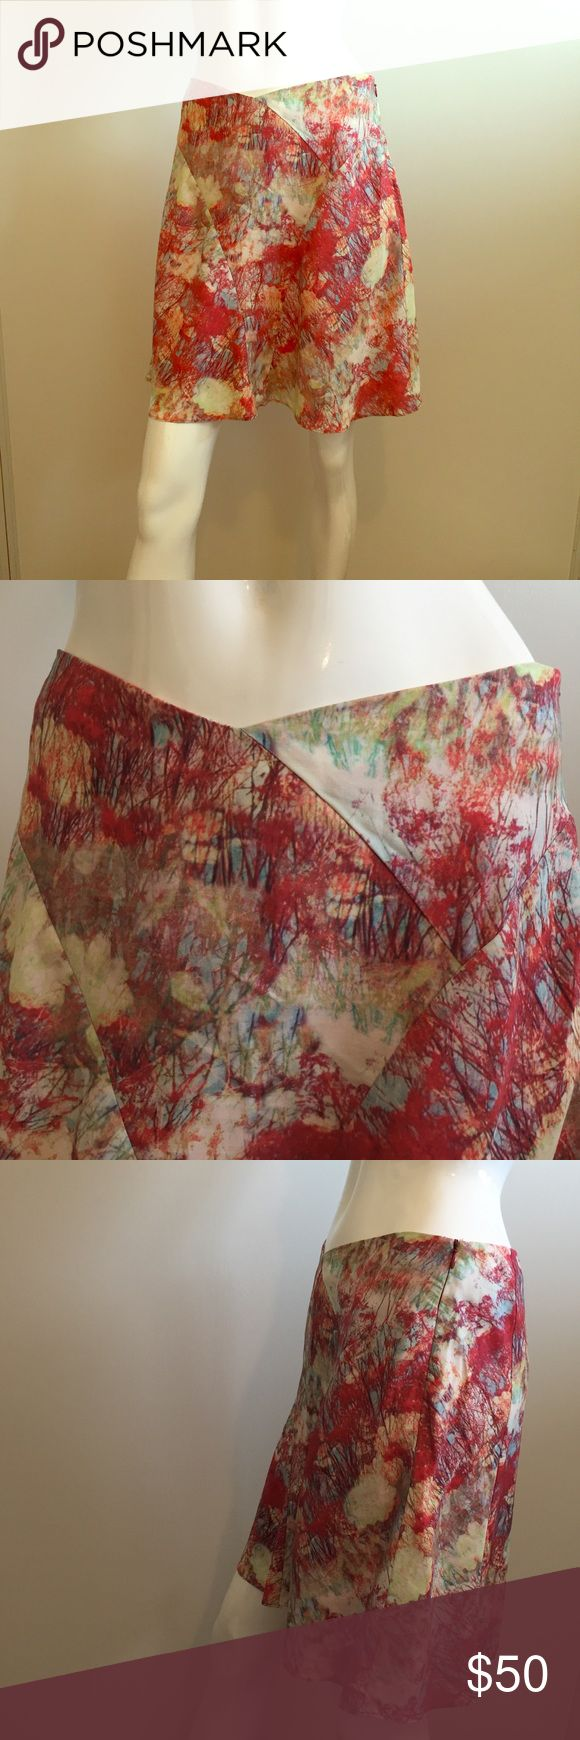 Reiss Flora Print Skirt Retail: $189 BRAND NEW Without Tags super cute..    Reiss Floral Print Skirt    ( Retail Price is $189)    Size: 4    Color: multi     100% lyocell       *** I'm a wardrobe stylist & this skirt was purchased for a film but it was NEVER WORN on set! It's Brand New, as shown in pictures    Waist: 28 inches  Hip: 43 inches  Total Length: 18.5 inches Reiss Skirts Mini